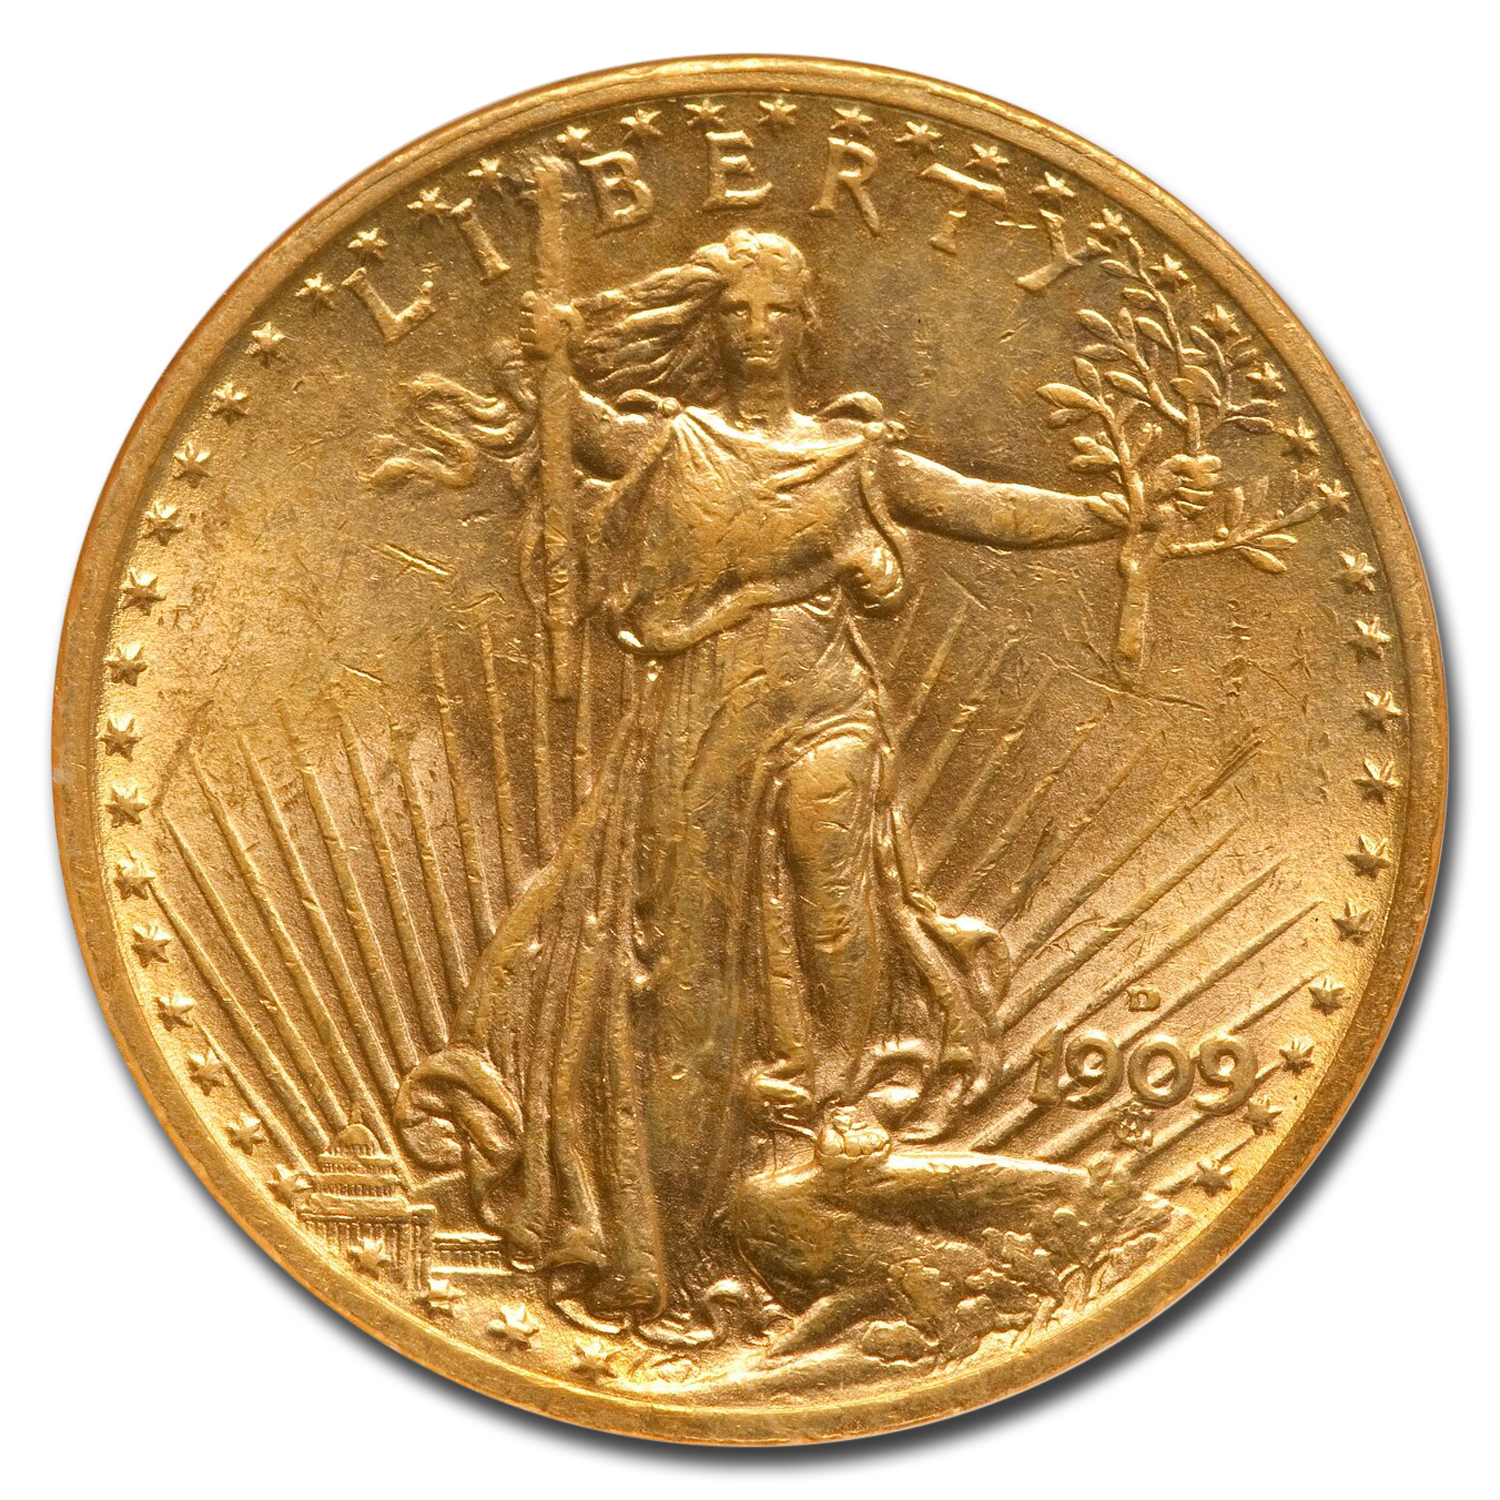 1909-D $20 St. Gaudens Gold Double Eagle - AU-58 NGC